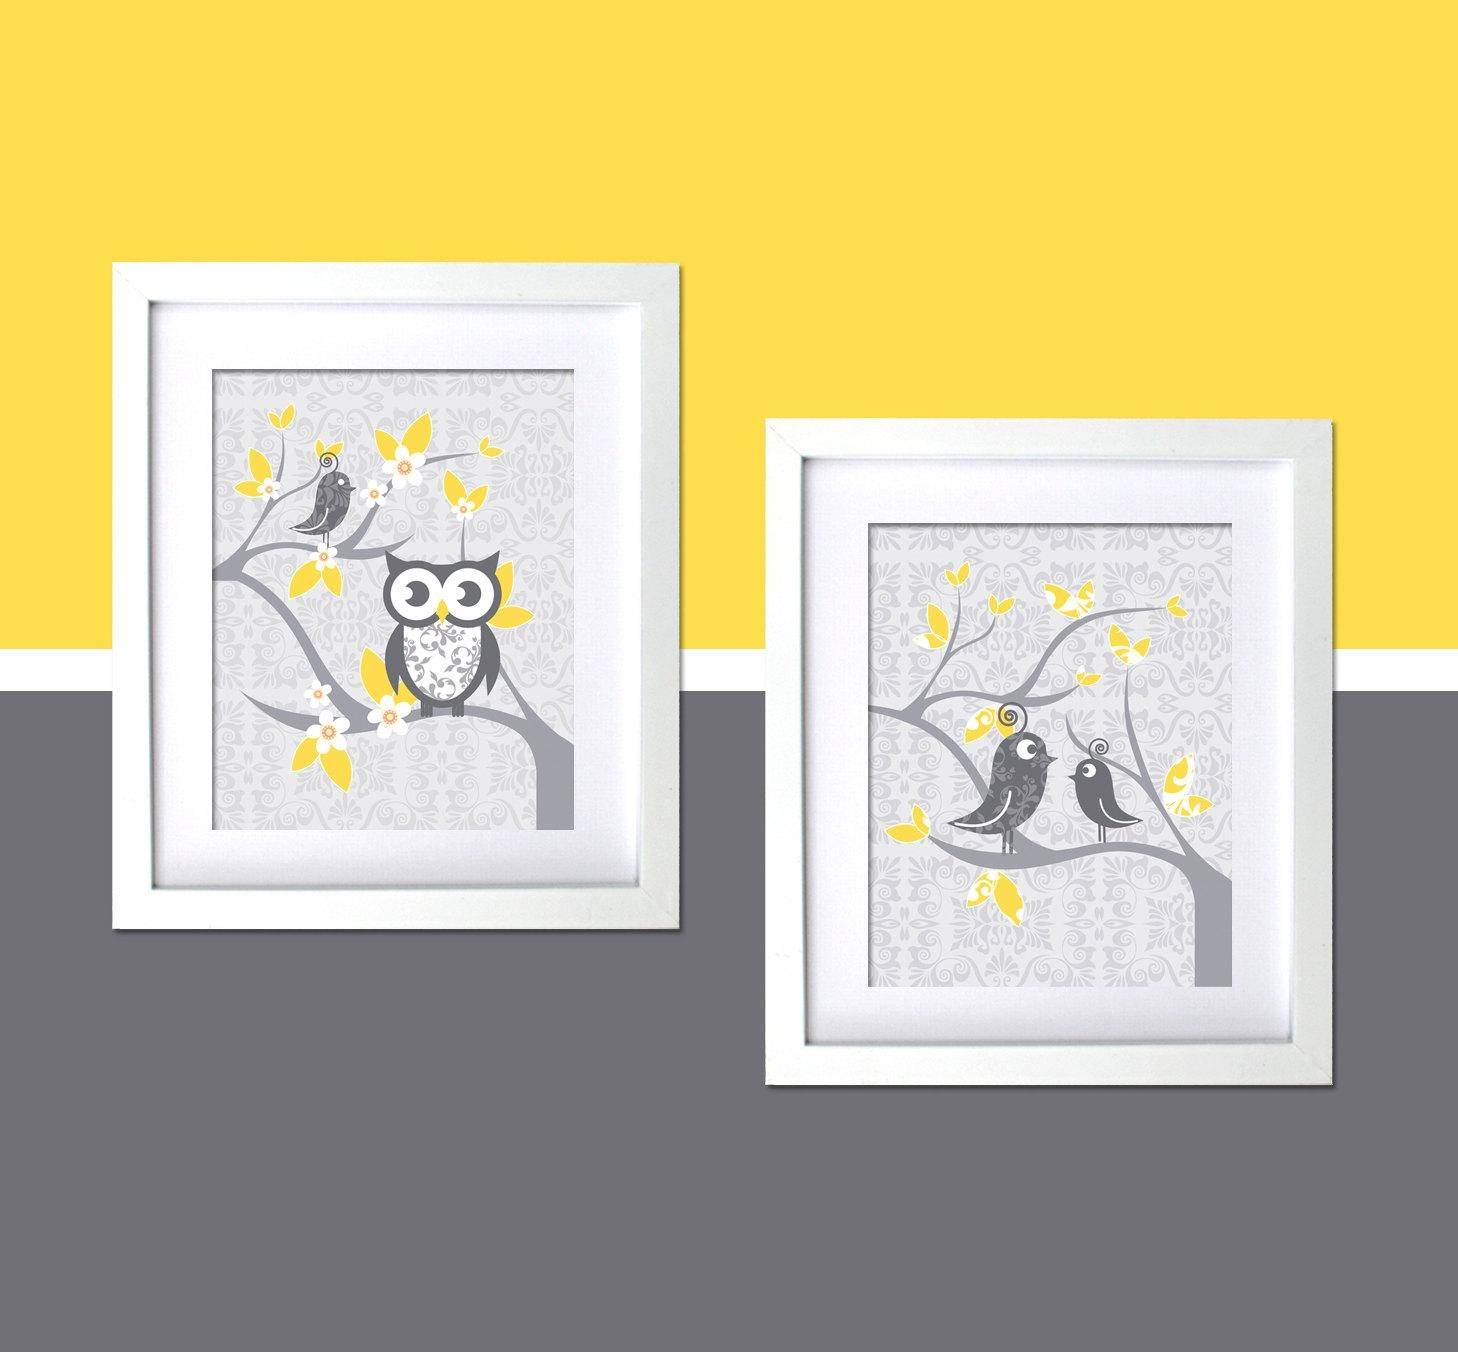 Wall Art Ideas: Yellow and Grey Wall Art (Explore #20 of 20 Photos)